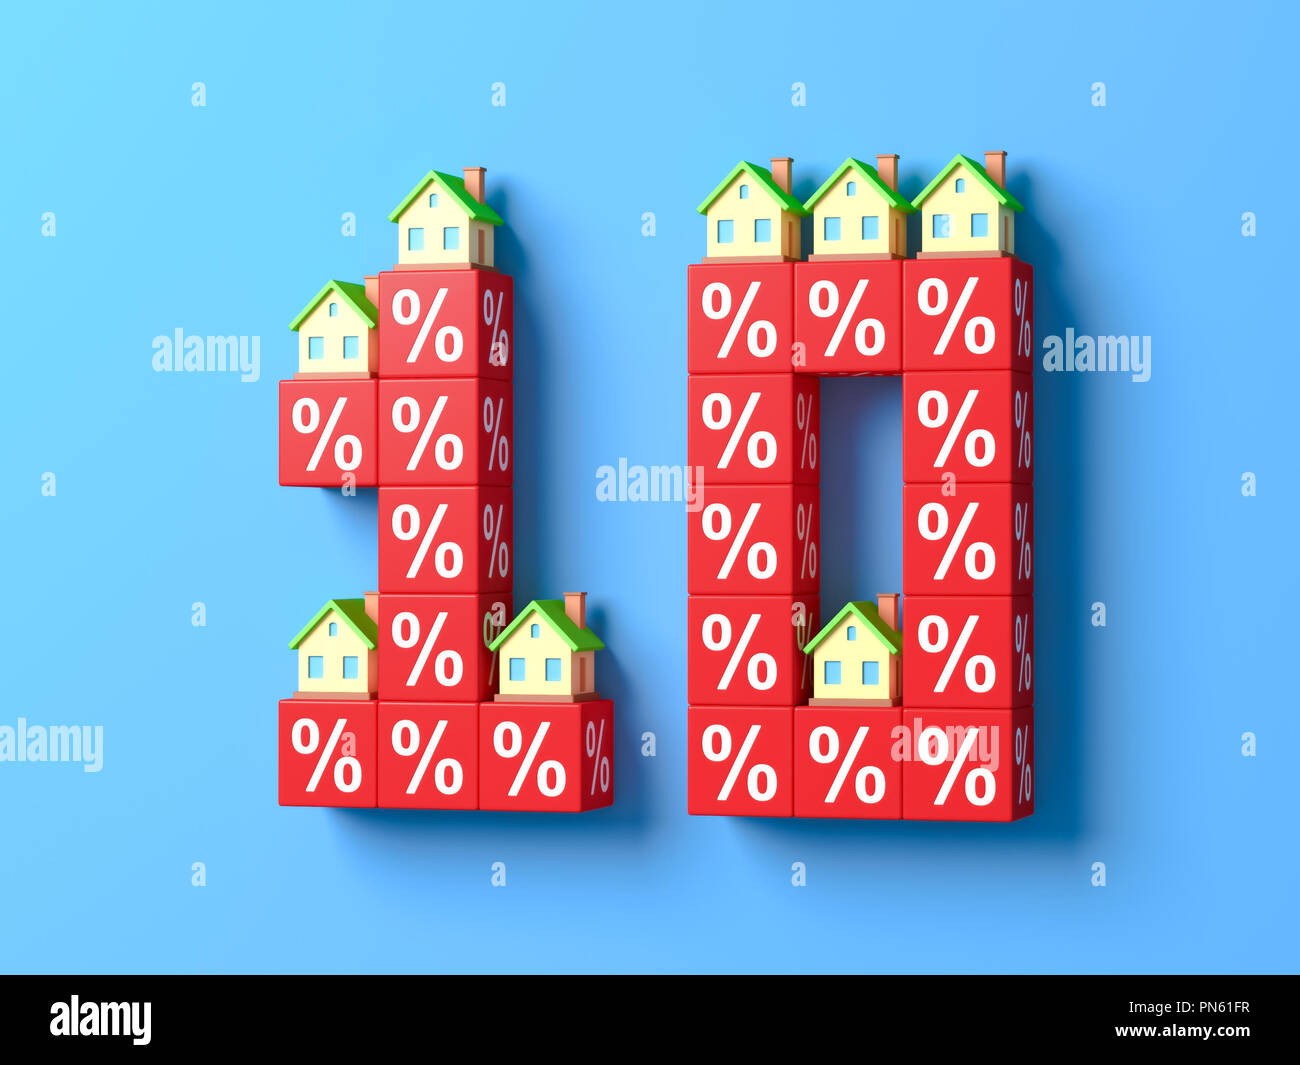 Number Ten With Miniature Houses And Red Percentage Blocks. 3d rendering. - Stock Image